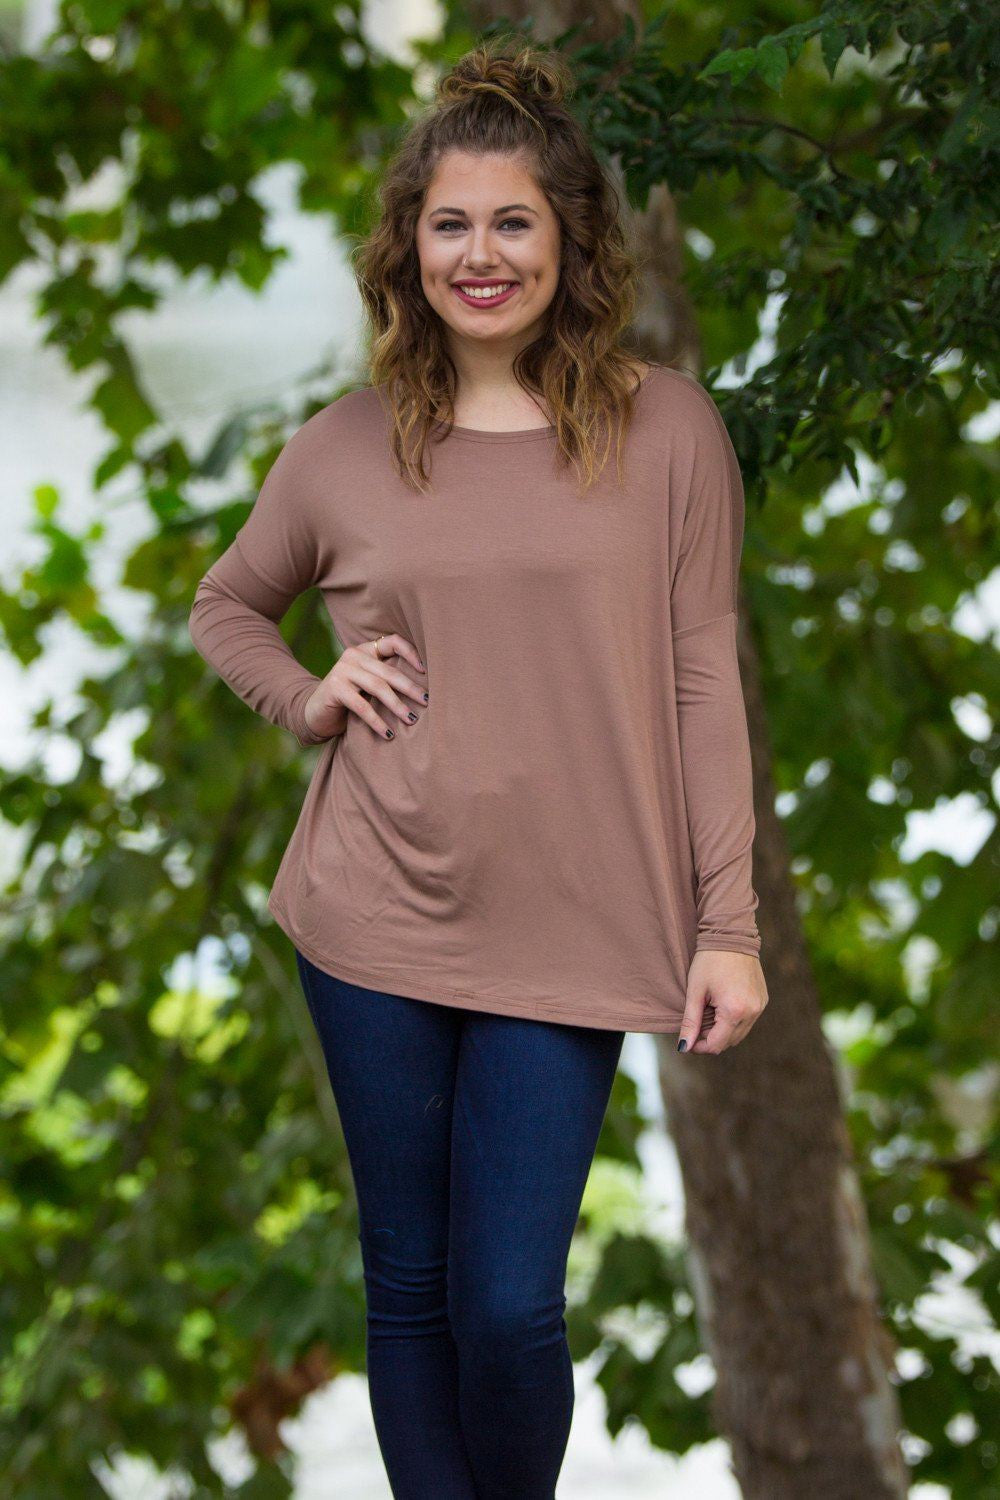 Long Sleeve Piko Top - Mocha - Piko Clothing